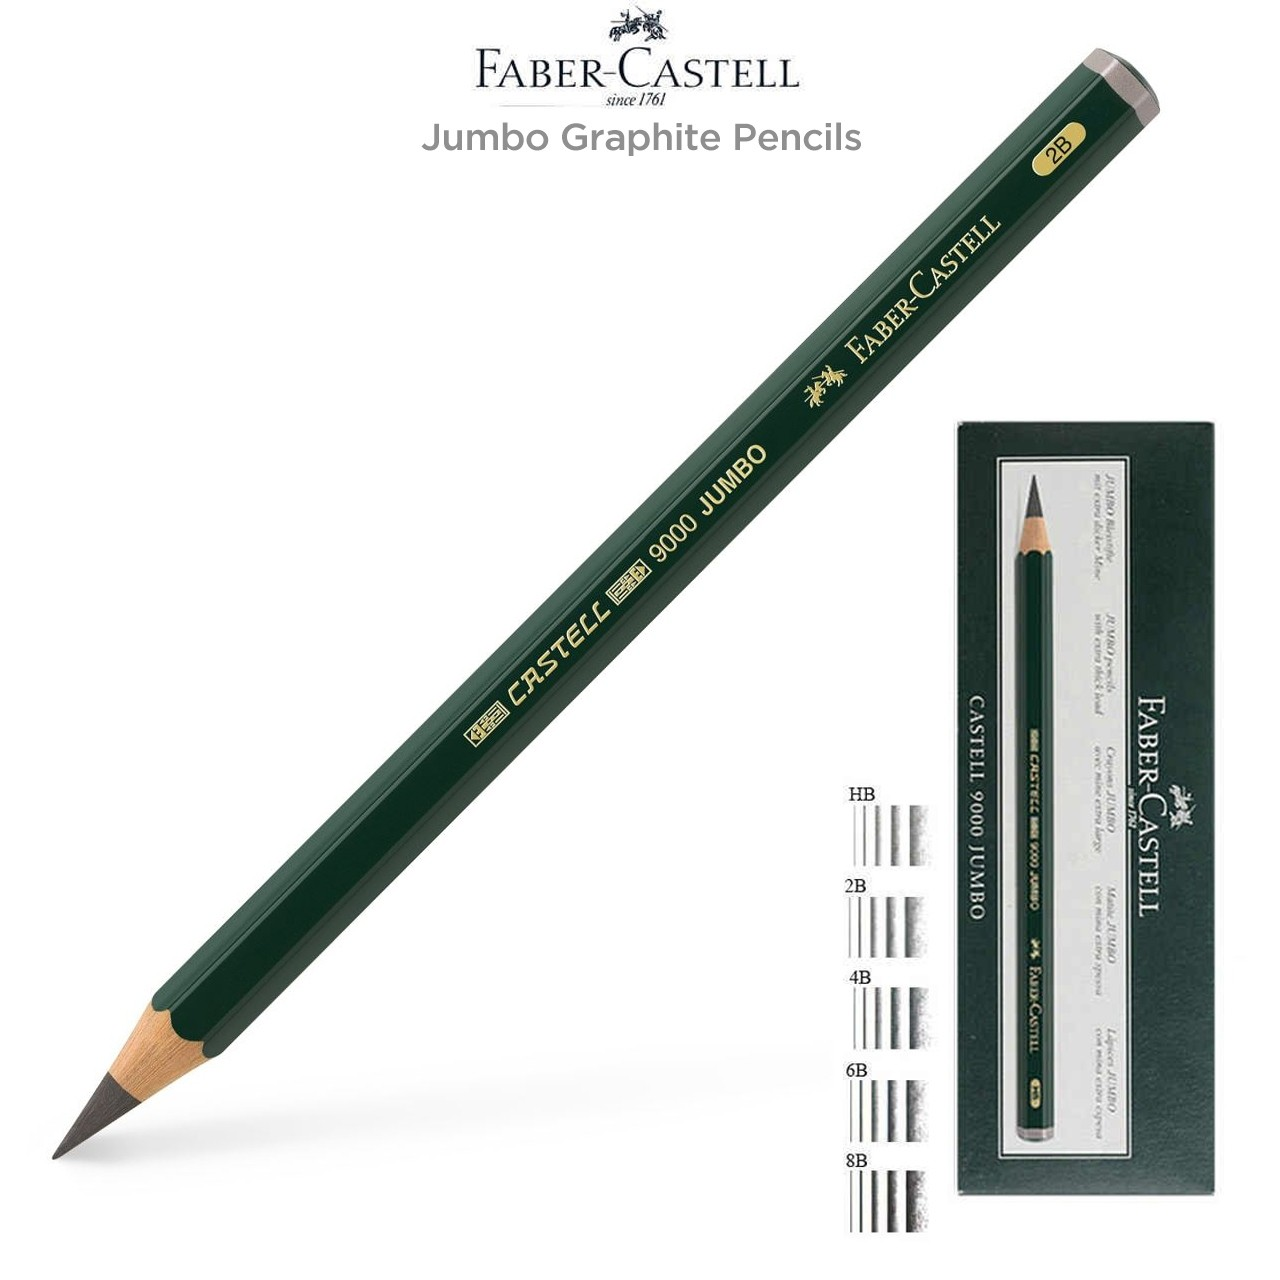 Faber-Castell 9000 Jumbo Graphite Pencils & Sets